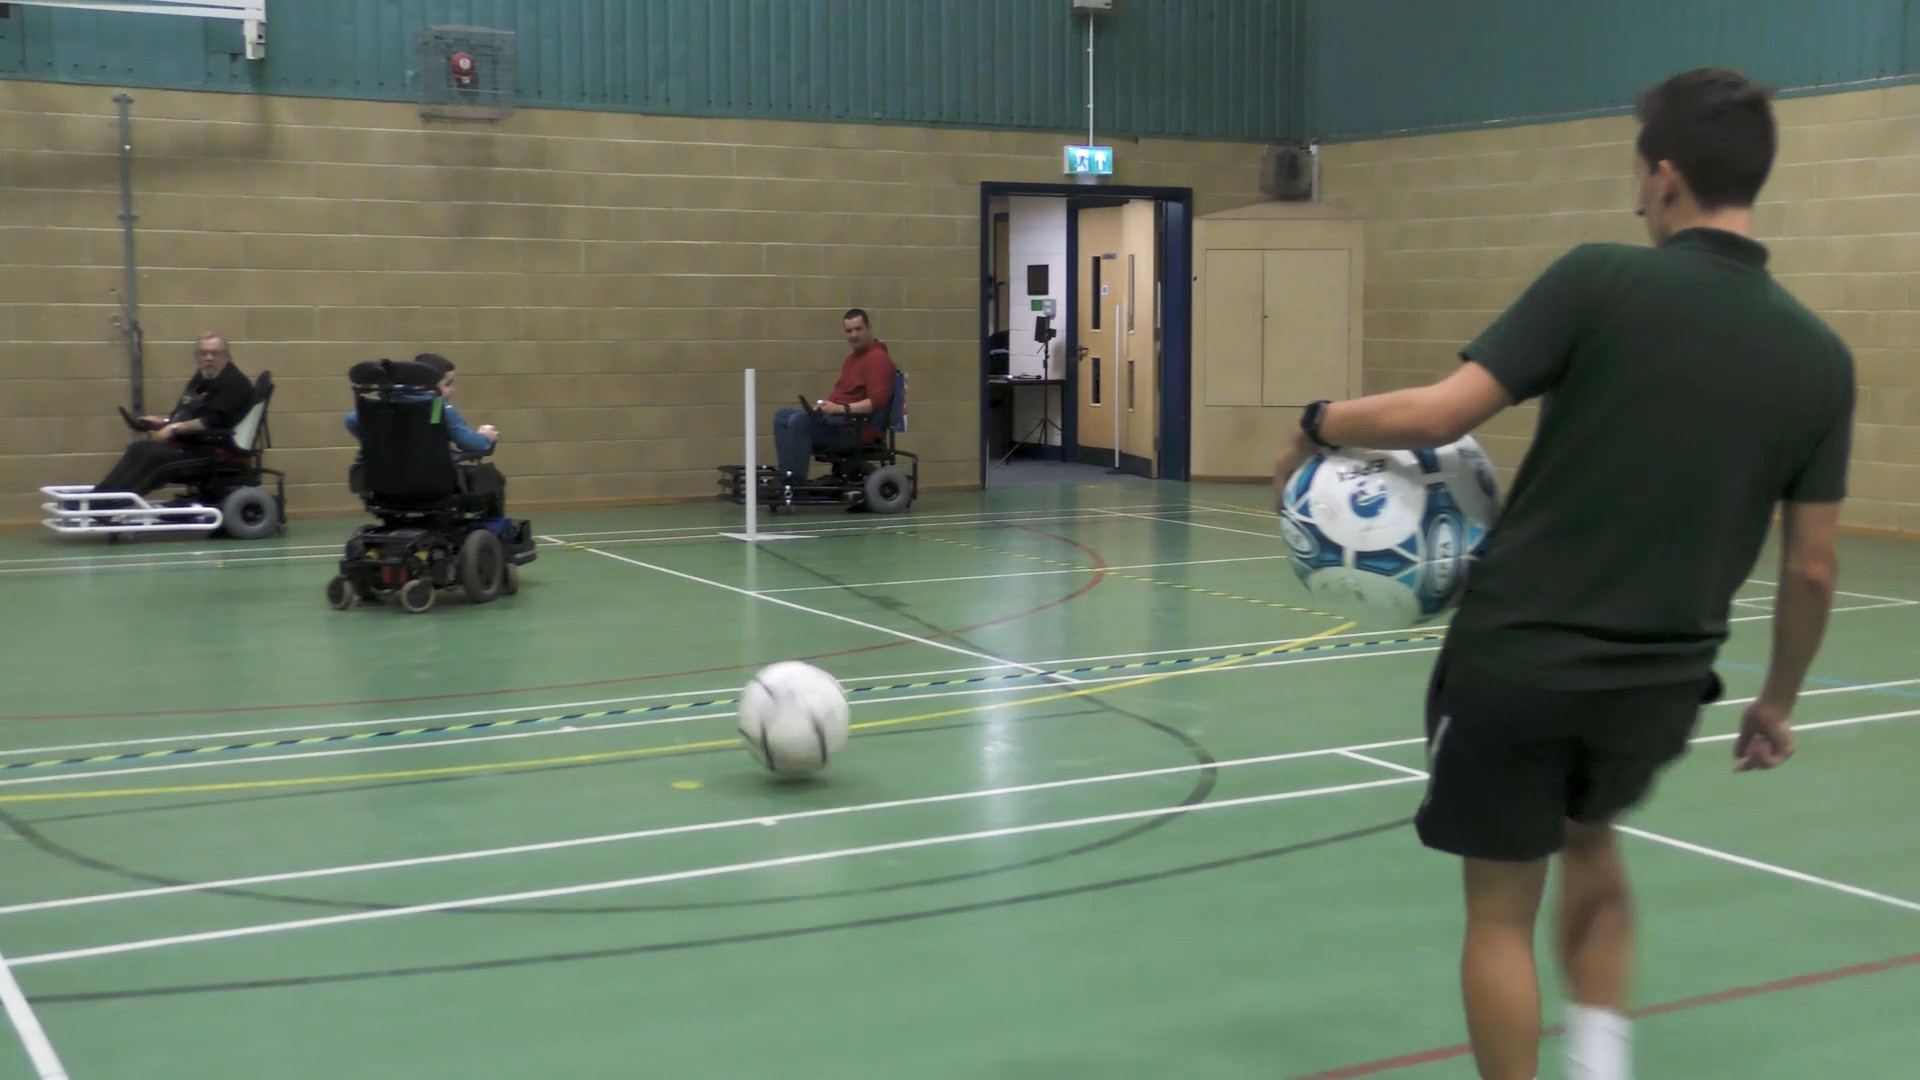 Still from Movement Films promotional video for Powerchair Football